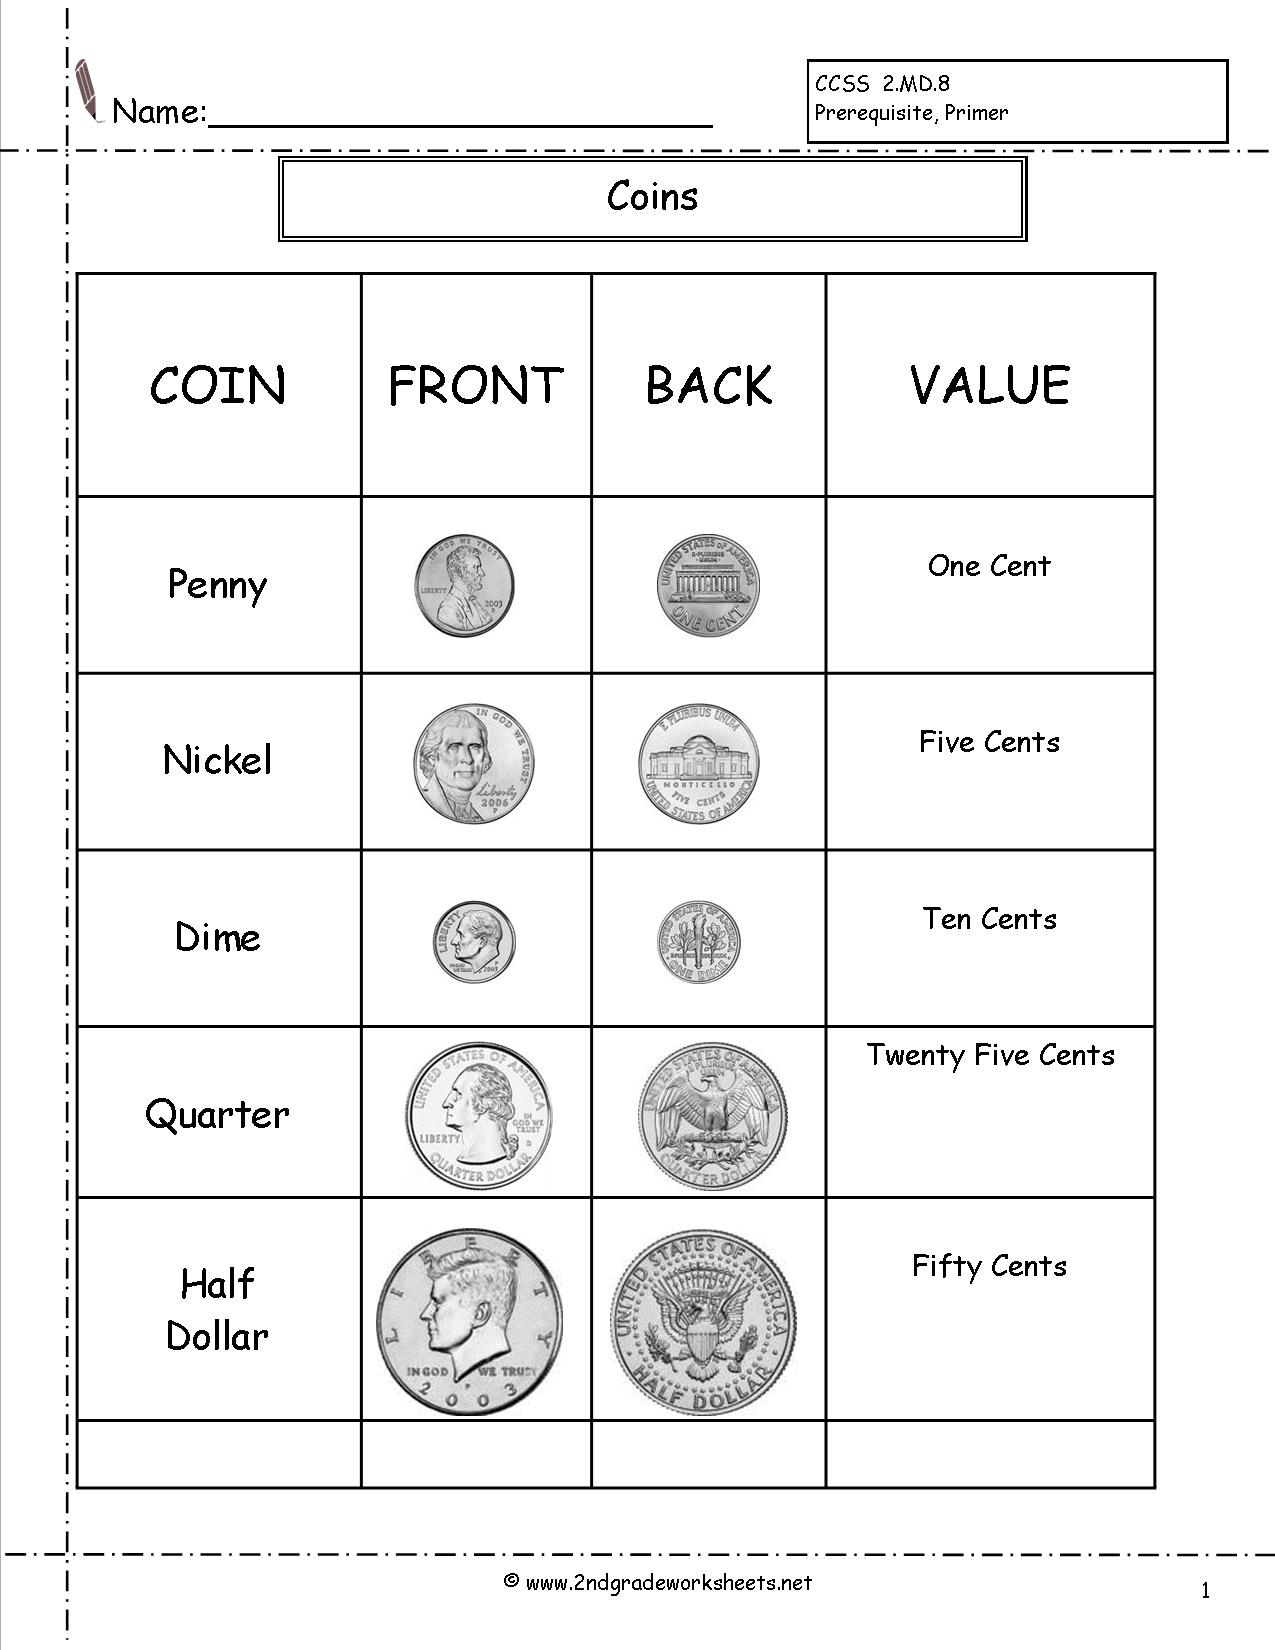 14 Best Images Of Nickel The Money Math Worksheets